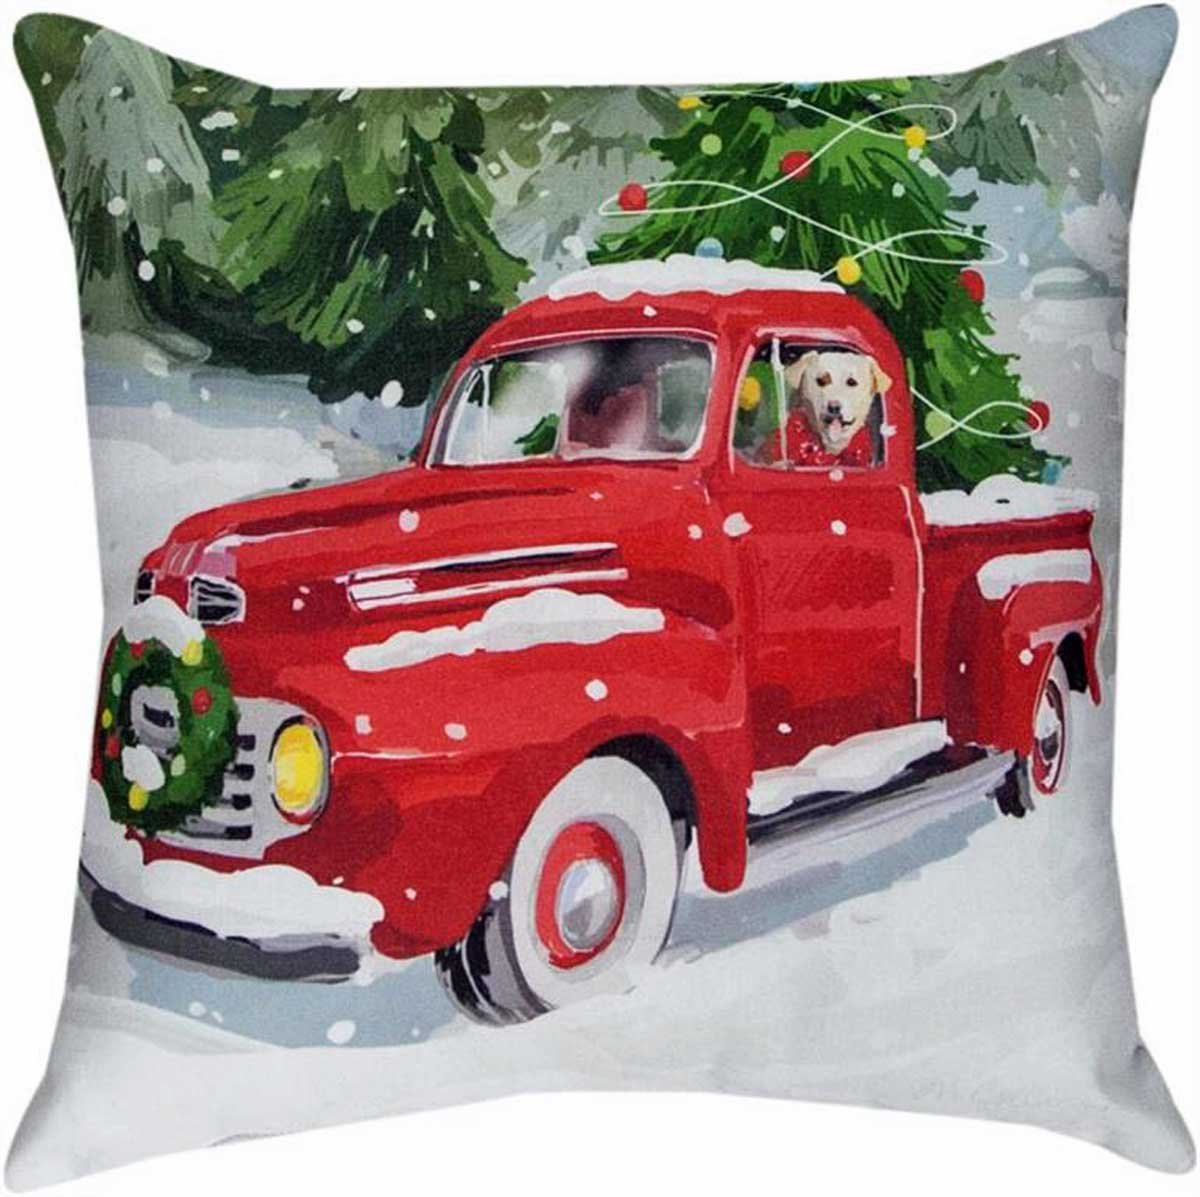 Decorative Pillows - Joy Riding Labrador Retriever Pillow - 18